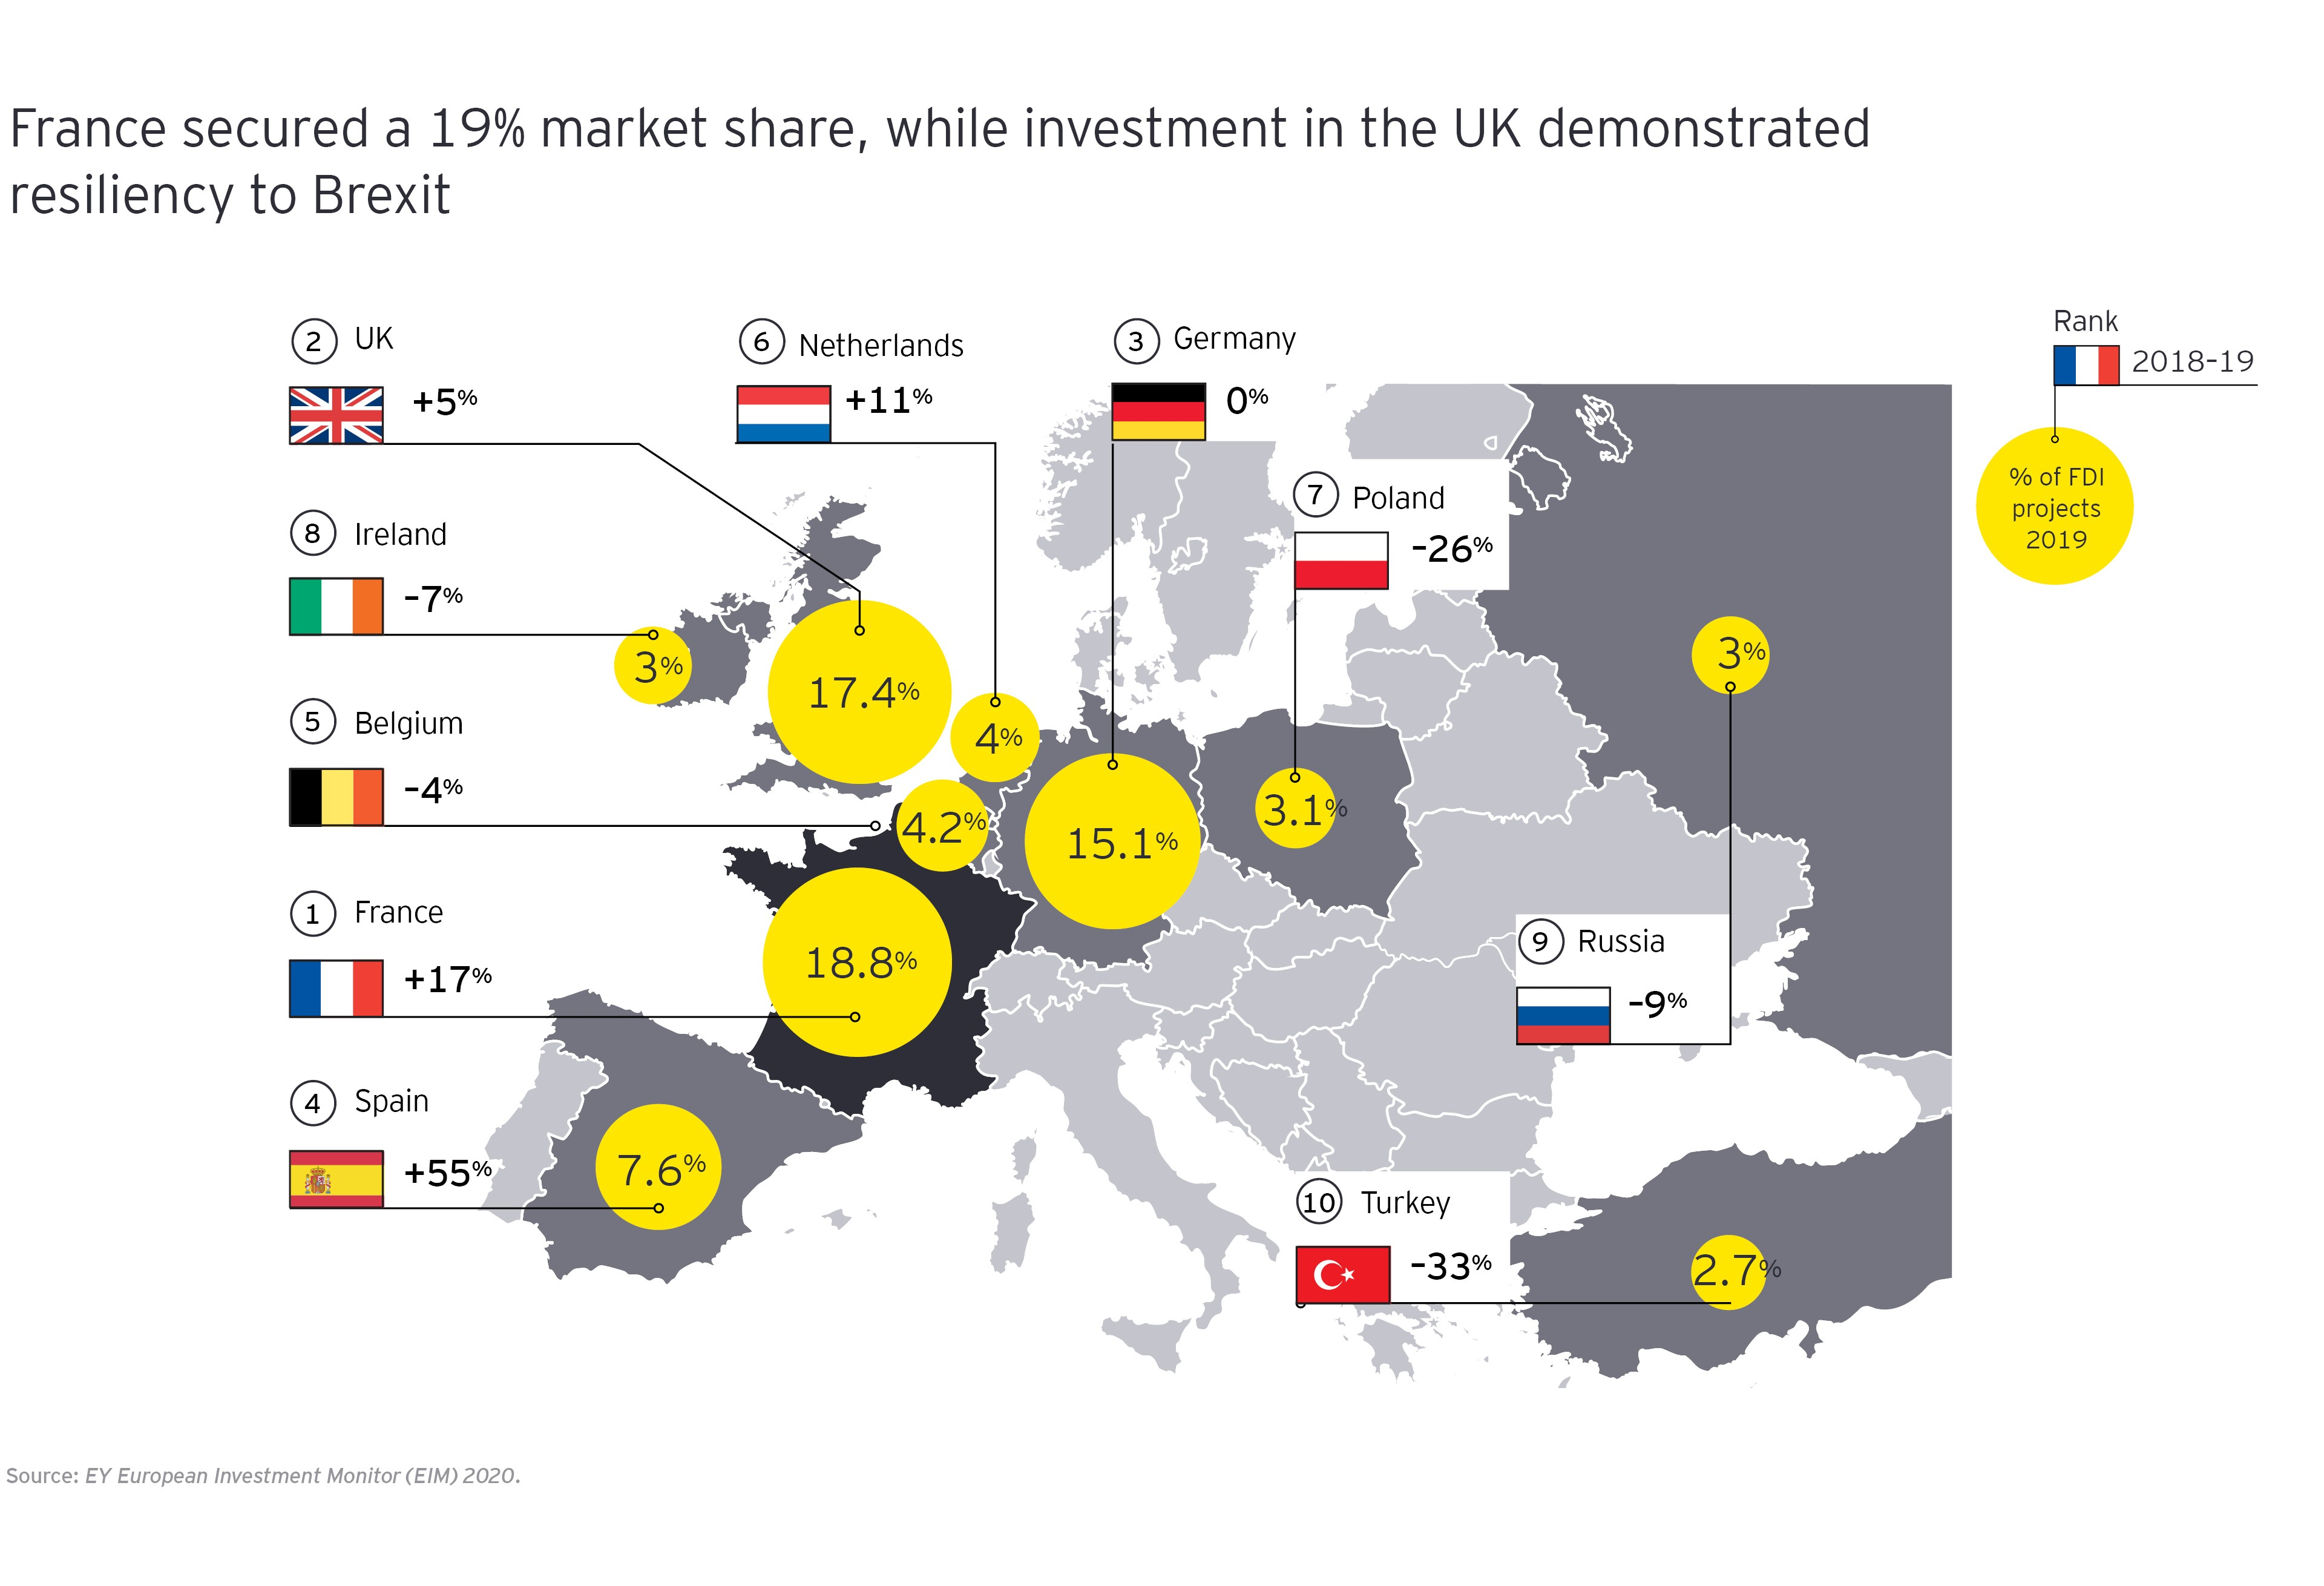 France secured a 19% market share while investment